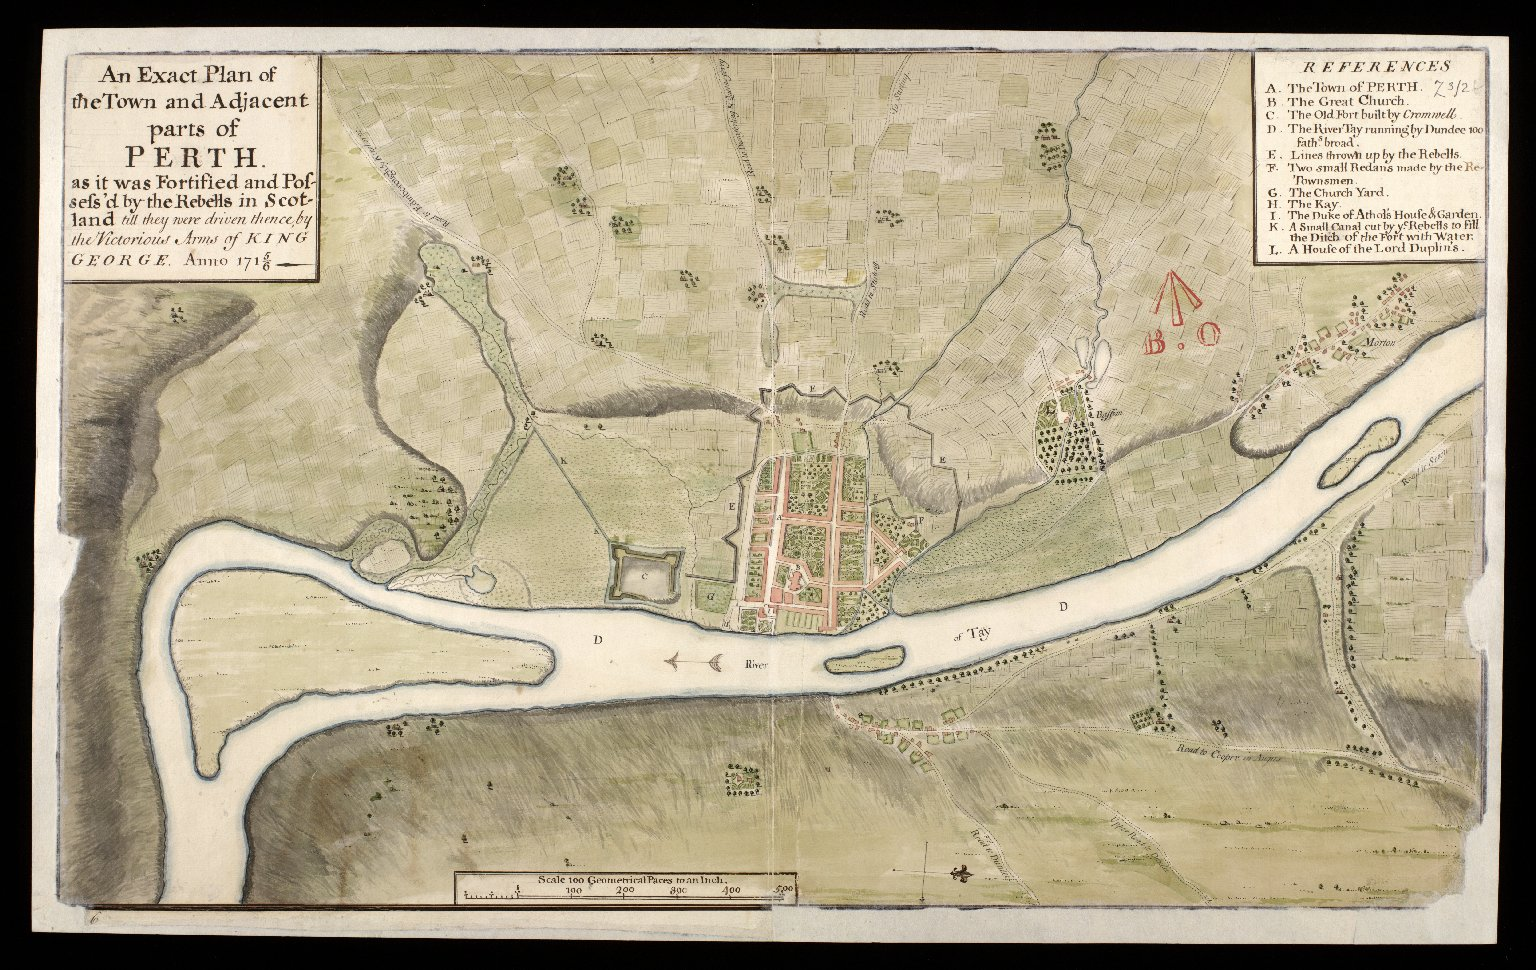 An Exact plan of the town and adjacent parts of Perth : as it was fortified and possessed by the rebells in Scotland, till they were driven thence by the victorious arms of King George, Anno 1715/6 [copy] [1 of 1]